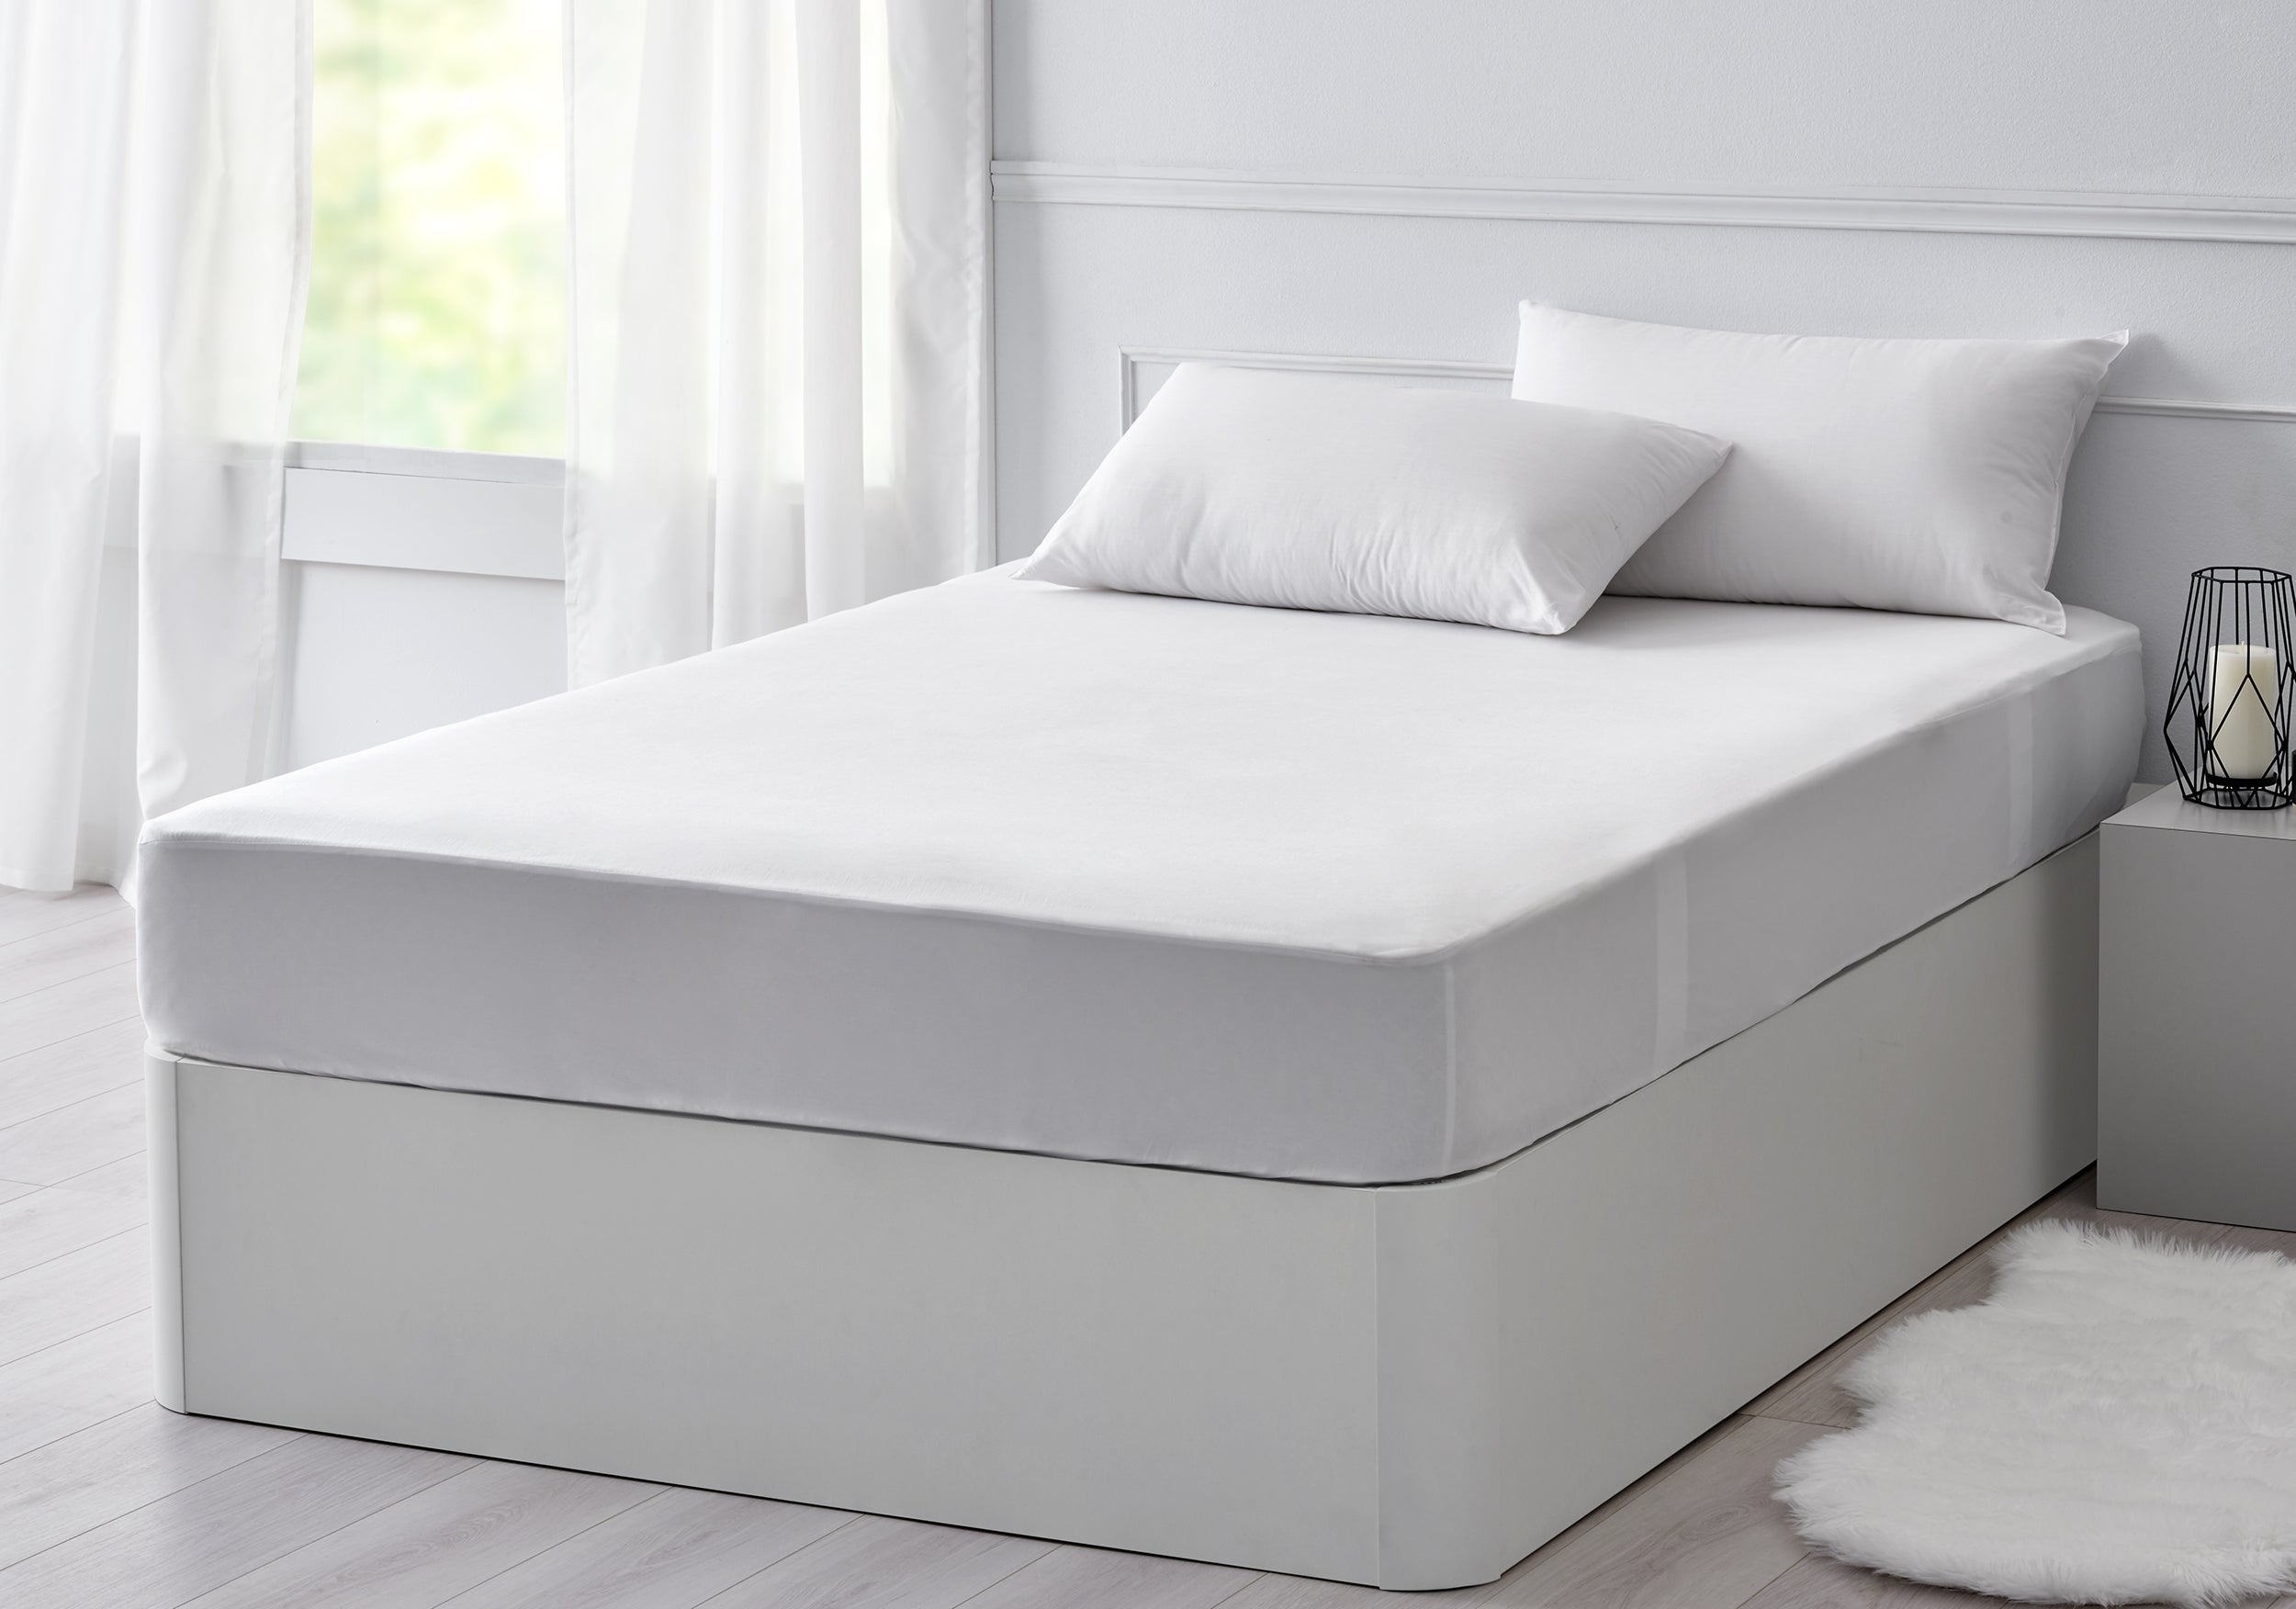 nectar waterproof King size mattress protector